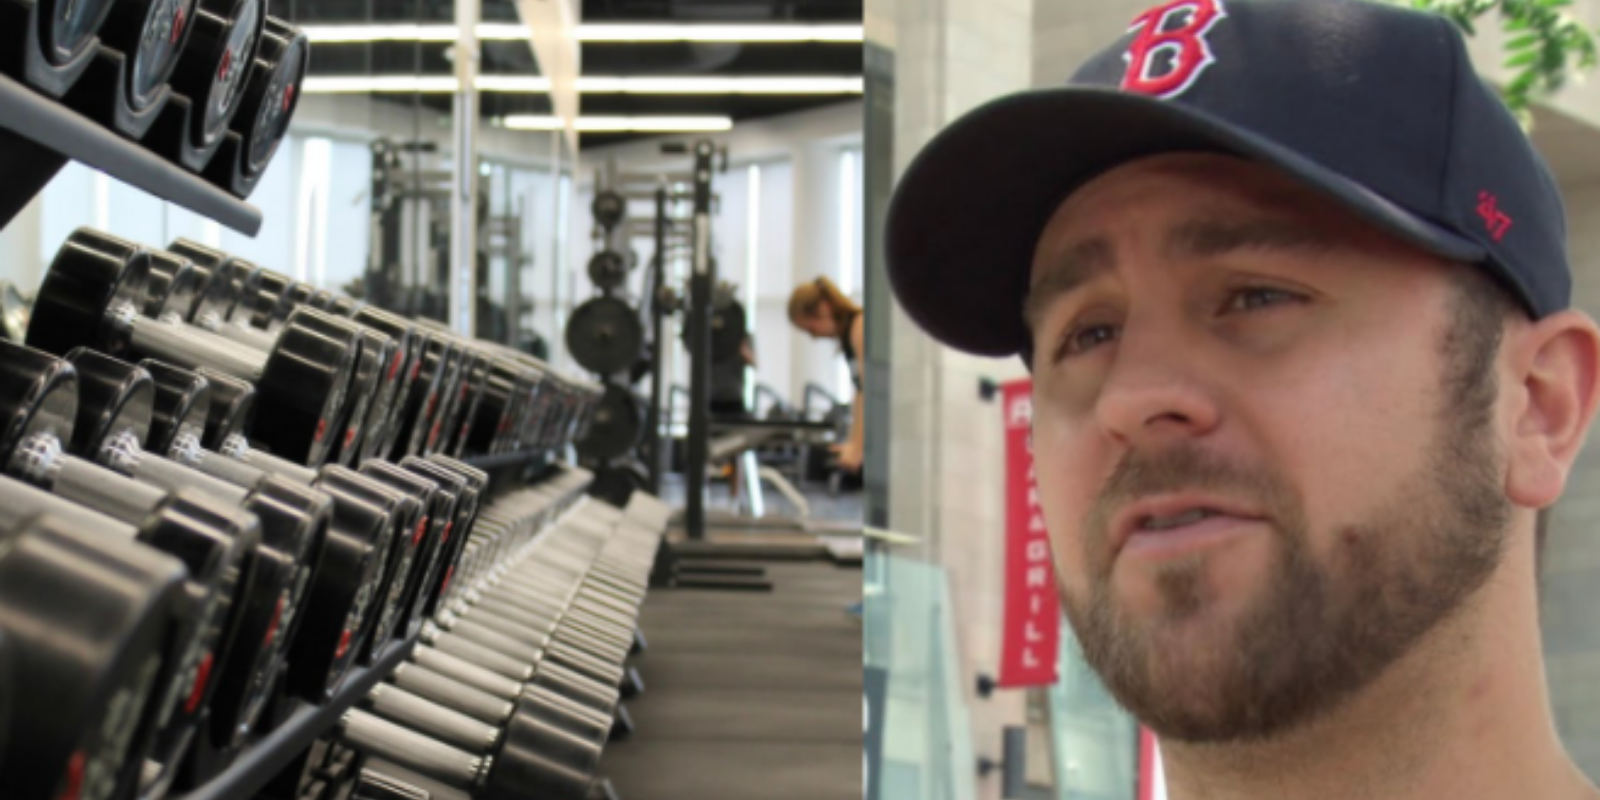 'Lives are on the line,' says Ontario gym owner who started petition to declare gyms essential